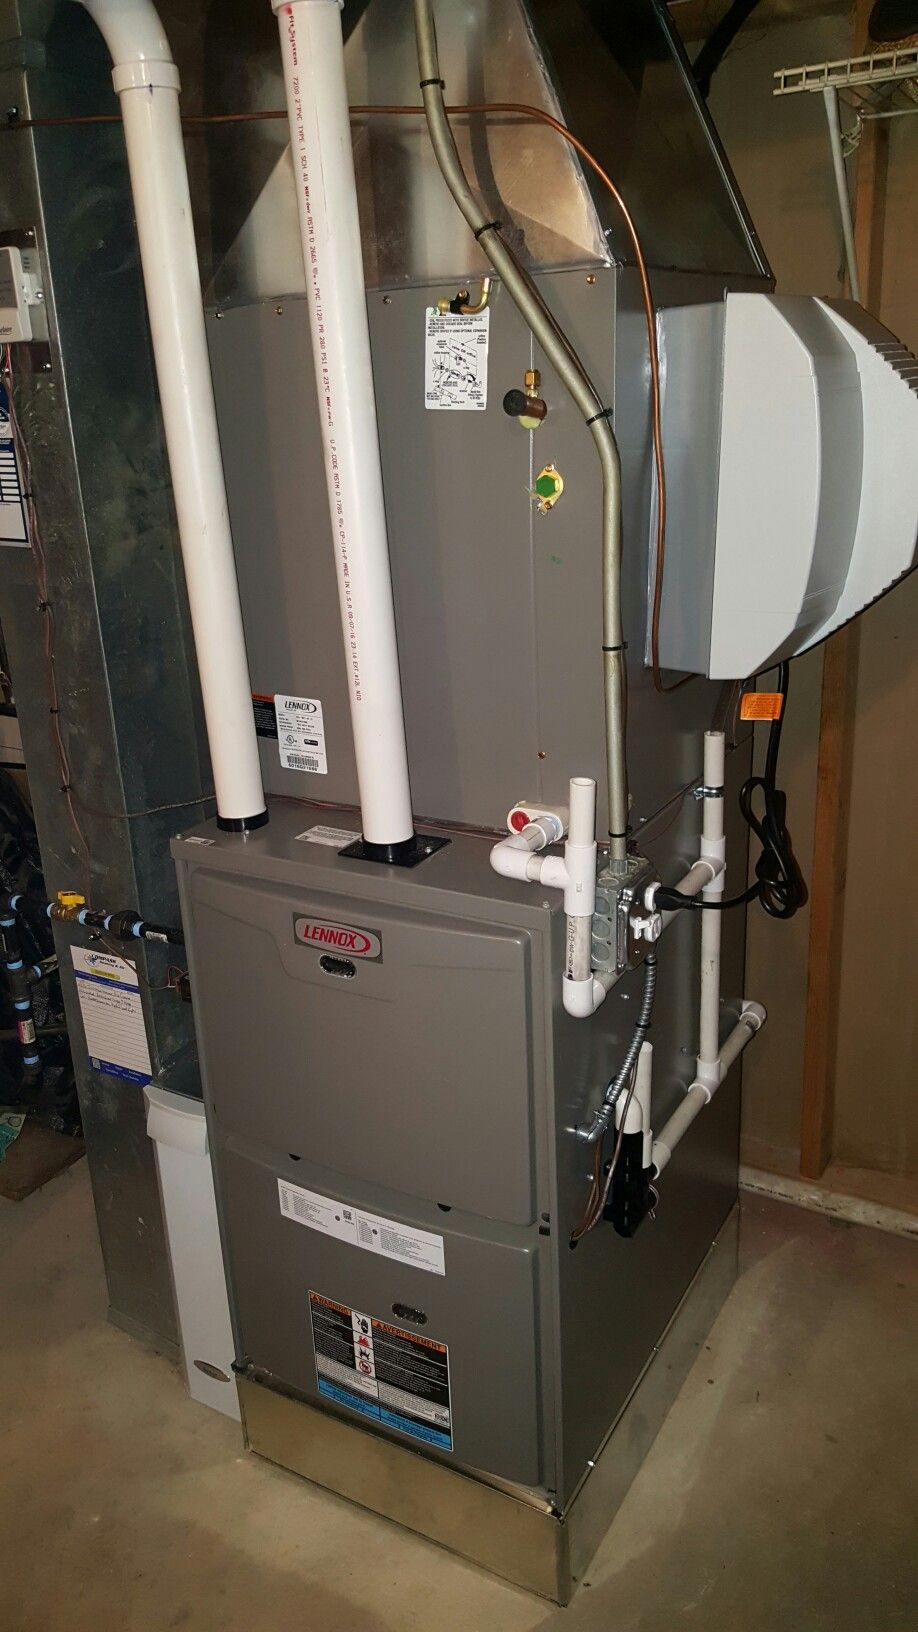 lennox ml193 high efficiency furnace cased evaporator coil provided by lennox through their heatupillinois com program aprilaire 700a powered humidifier  [ 918 x 1632 Pixel ]